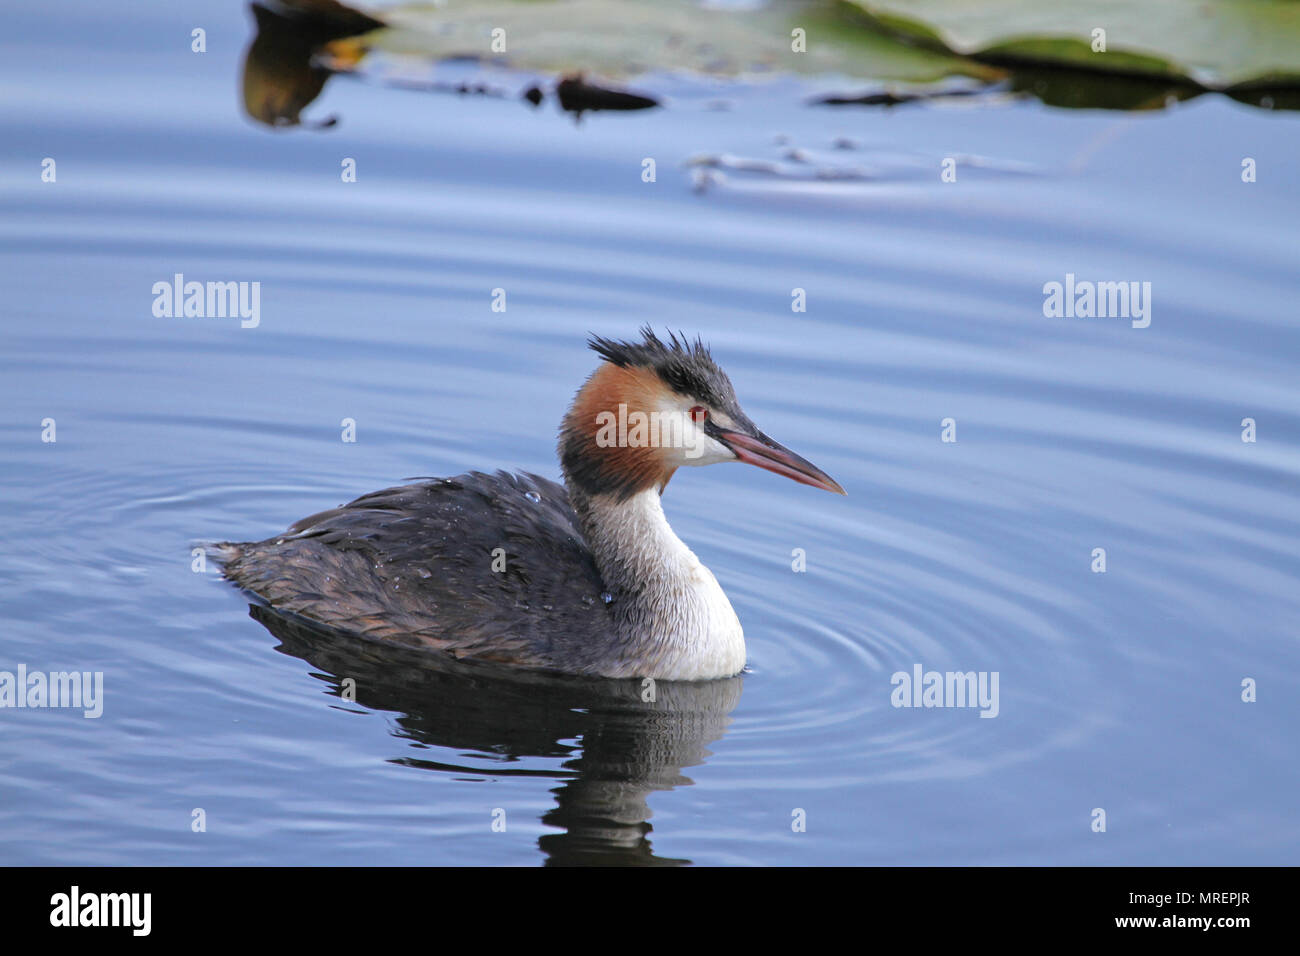 adult great crested grebe or horned grebe podiceps cristatus svasso cornuto close up in Colfiorito nature reserve in Italy - Stock Image